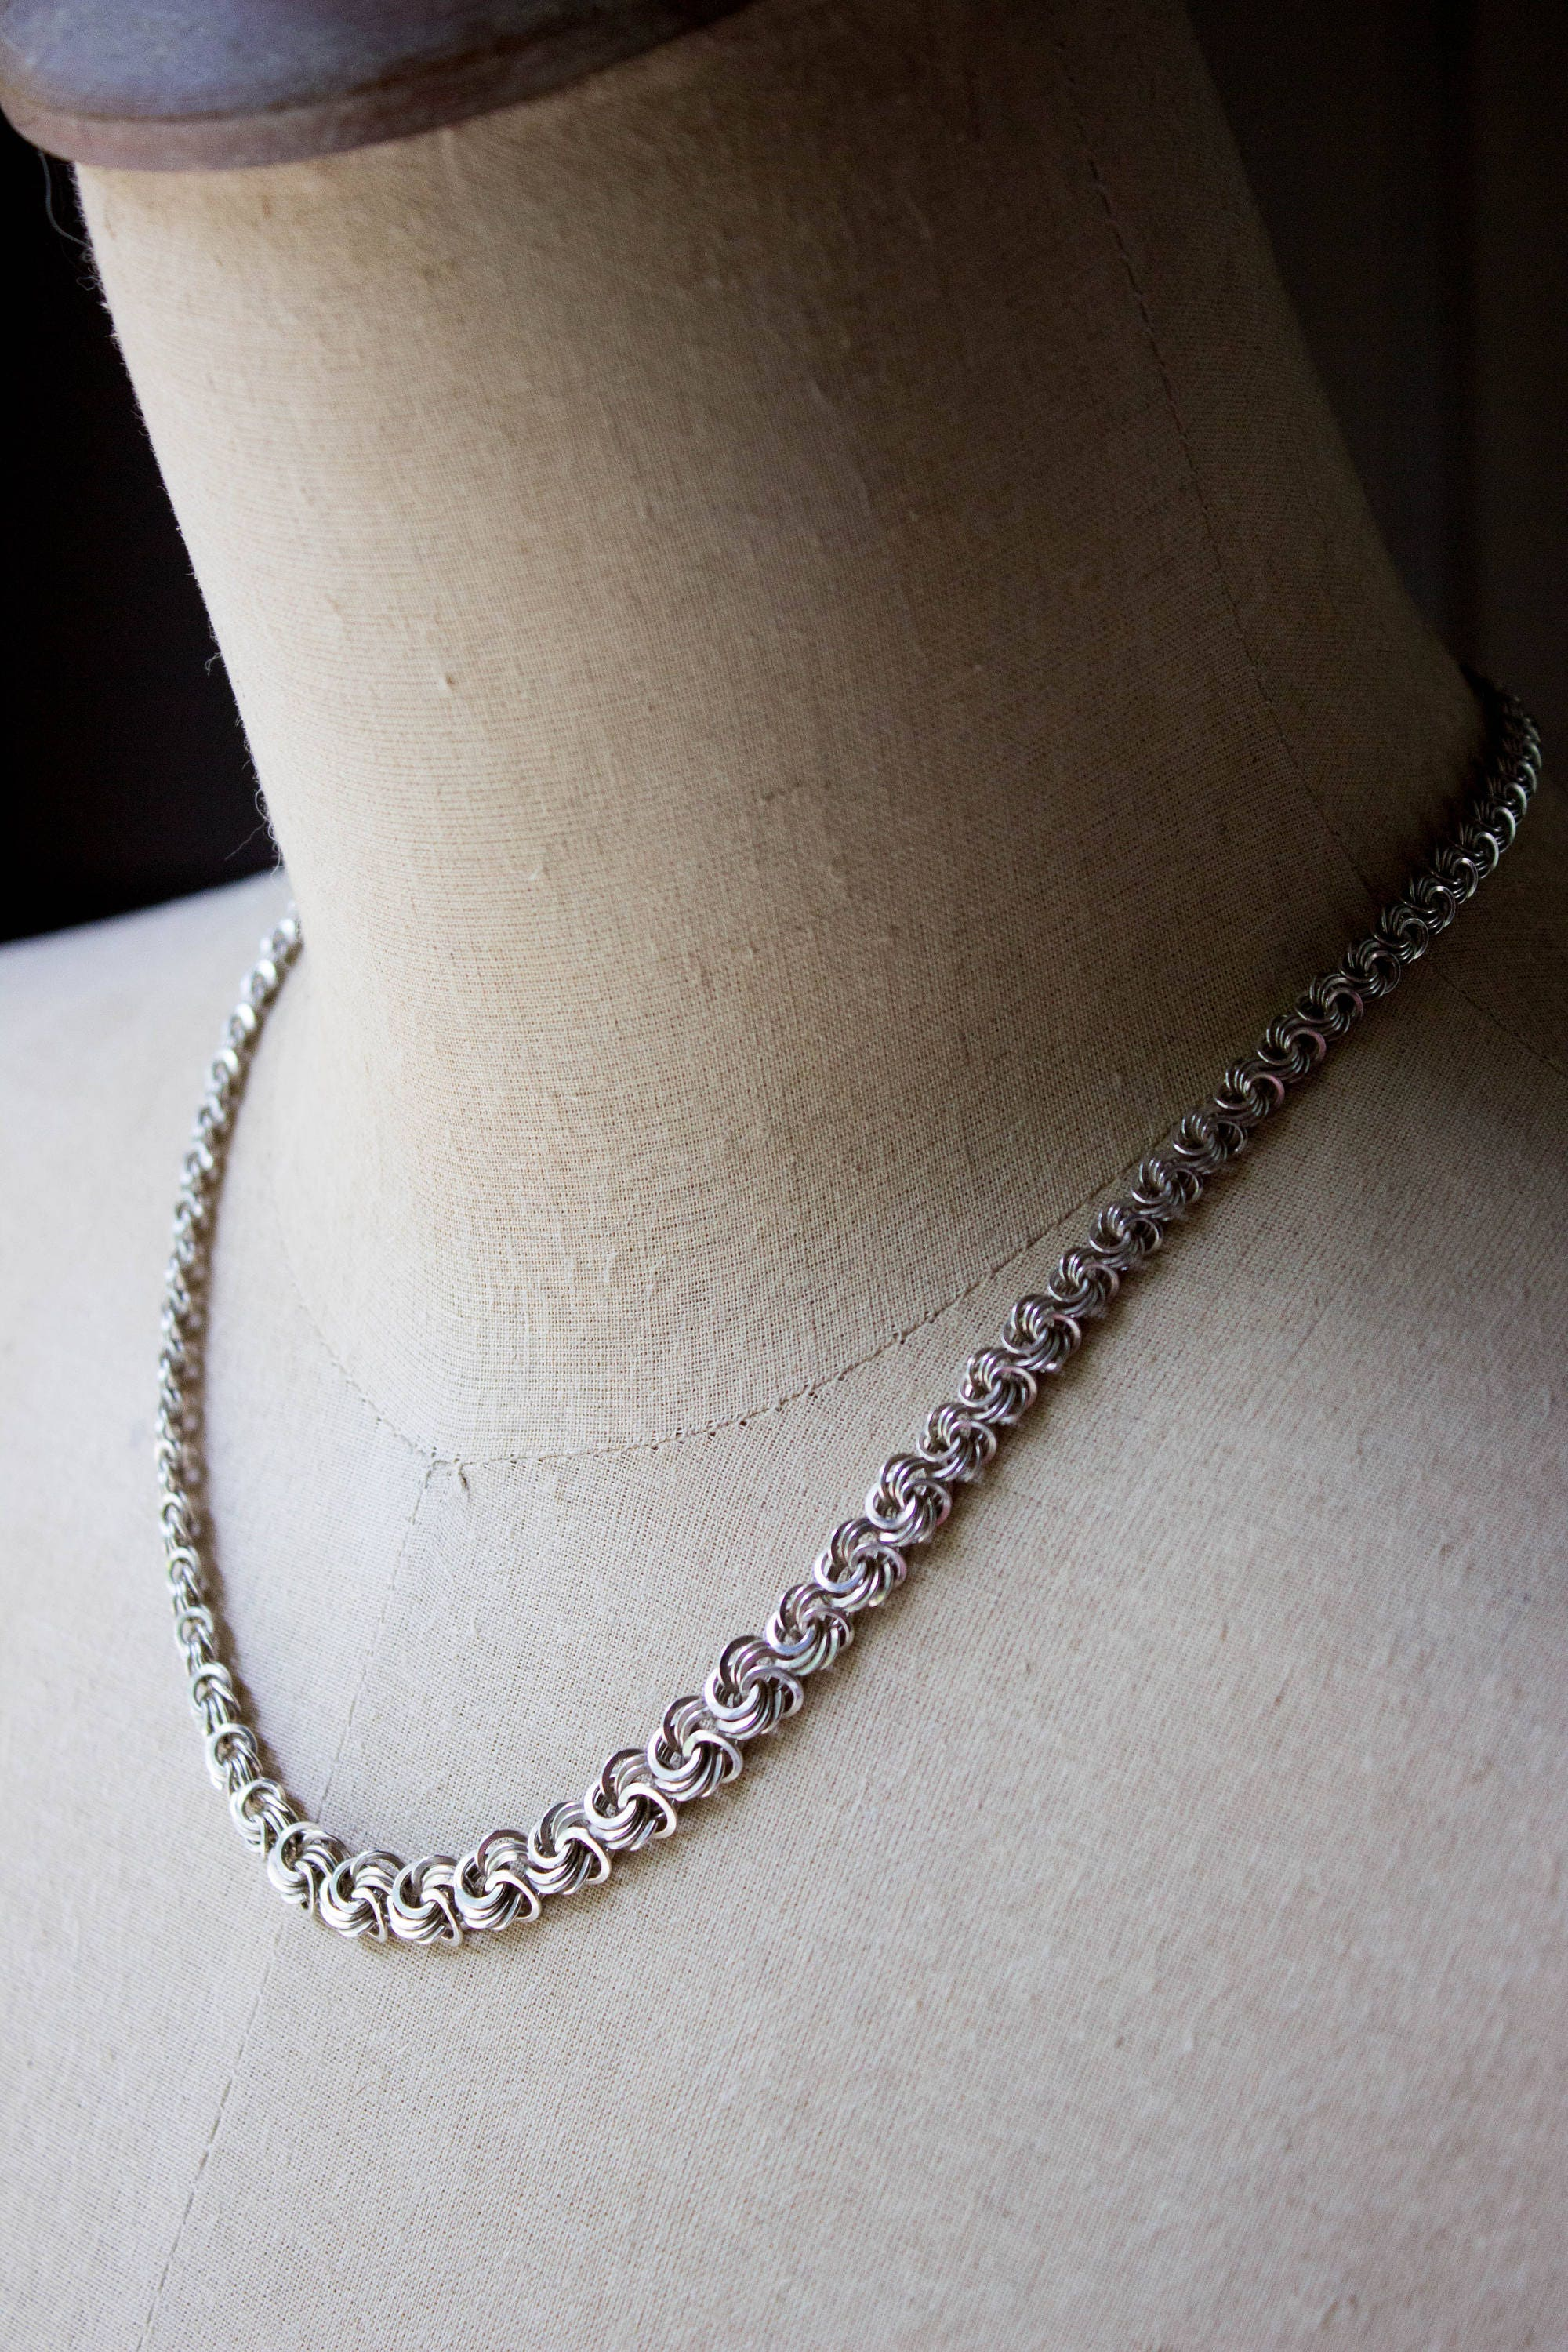 chains silver sterling chain fortunoff stores necklace jewelry popcorn long inches texture island